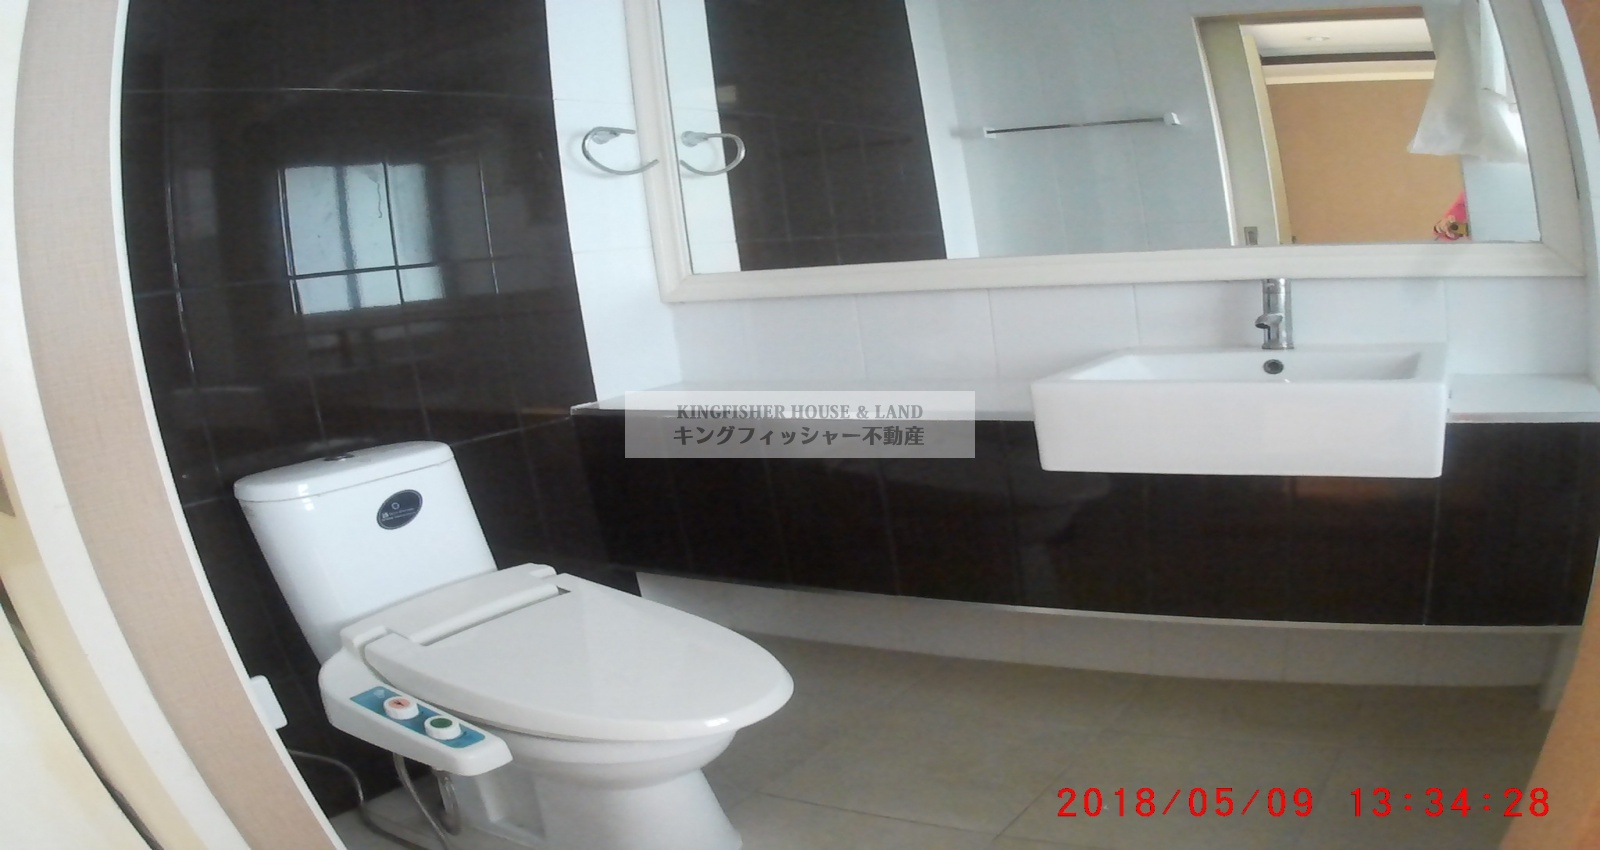 1 Bedrooms, Condominium, For Rent, 1 Bathrooms, Listing ID 1279, Sriracha, Thailand, 20110,